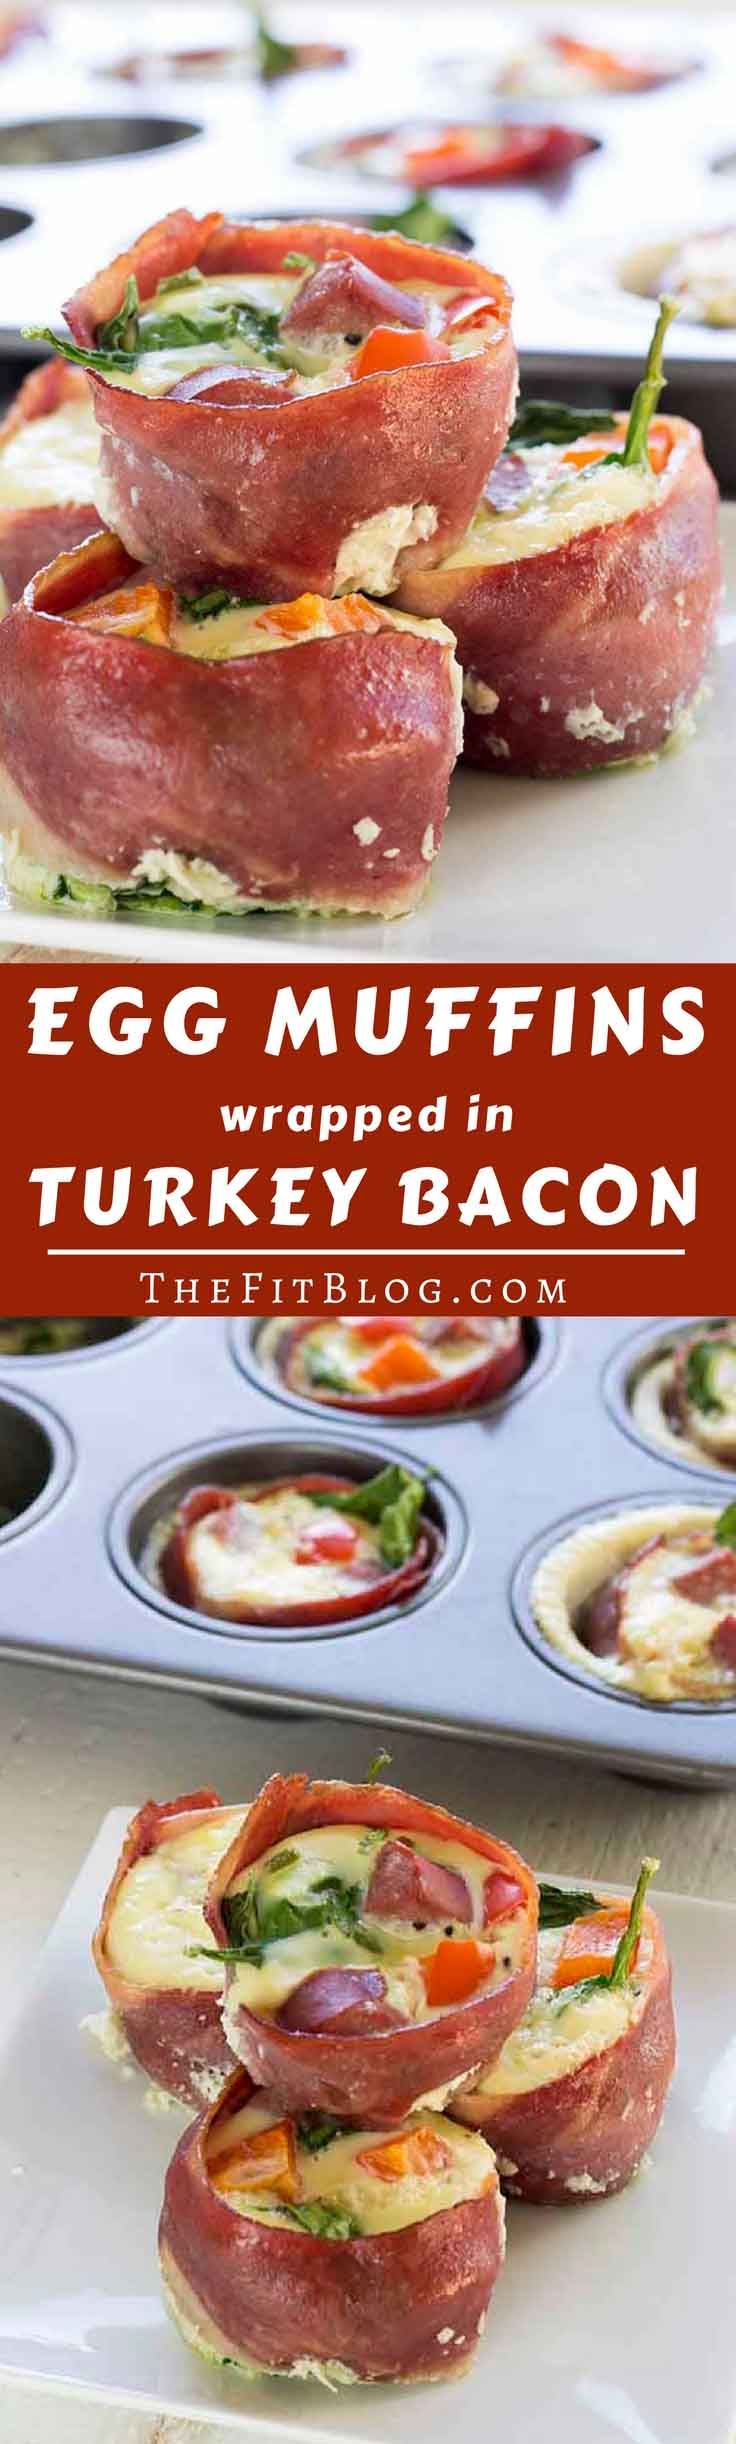 Healthy Egg Muffins With Lean Turkey Bacon - These healthy egg muffins take hardly any effort to make, taste amazing, and can be stored and reheated the next day. What more could you wish for in a recipe? (low-carb, high-protein, paleo, gluten-free, diabetes friendly) #eggwhite #Eggmuffins #breakfast #brunchrecipes #breakfastrecipes #healthyeating #healthyrecipes #diabetesdiet #diabetesrecipe #diabeticdiet #diabeticfood #diabeticrecipe #diabeticfriendly #lowcarb #lowcarbdiet #lowcarbrecipes